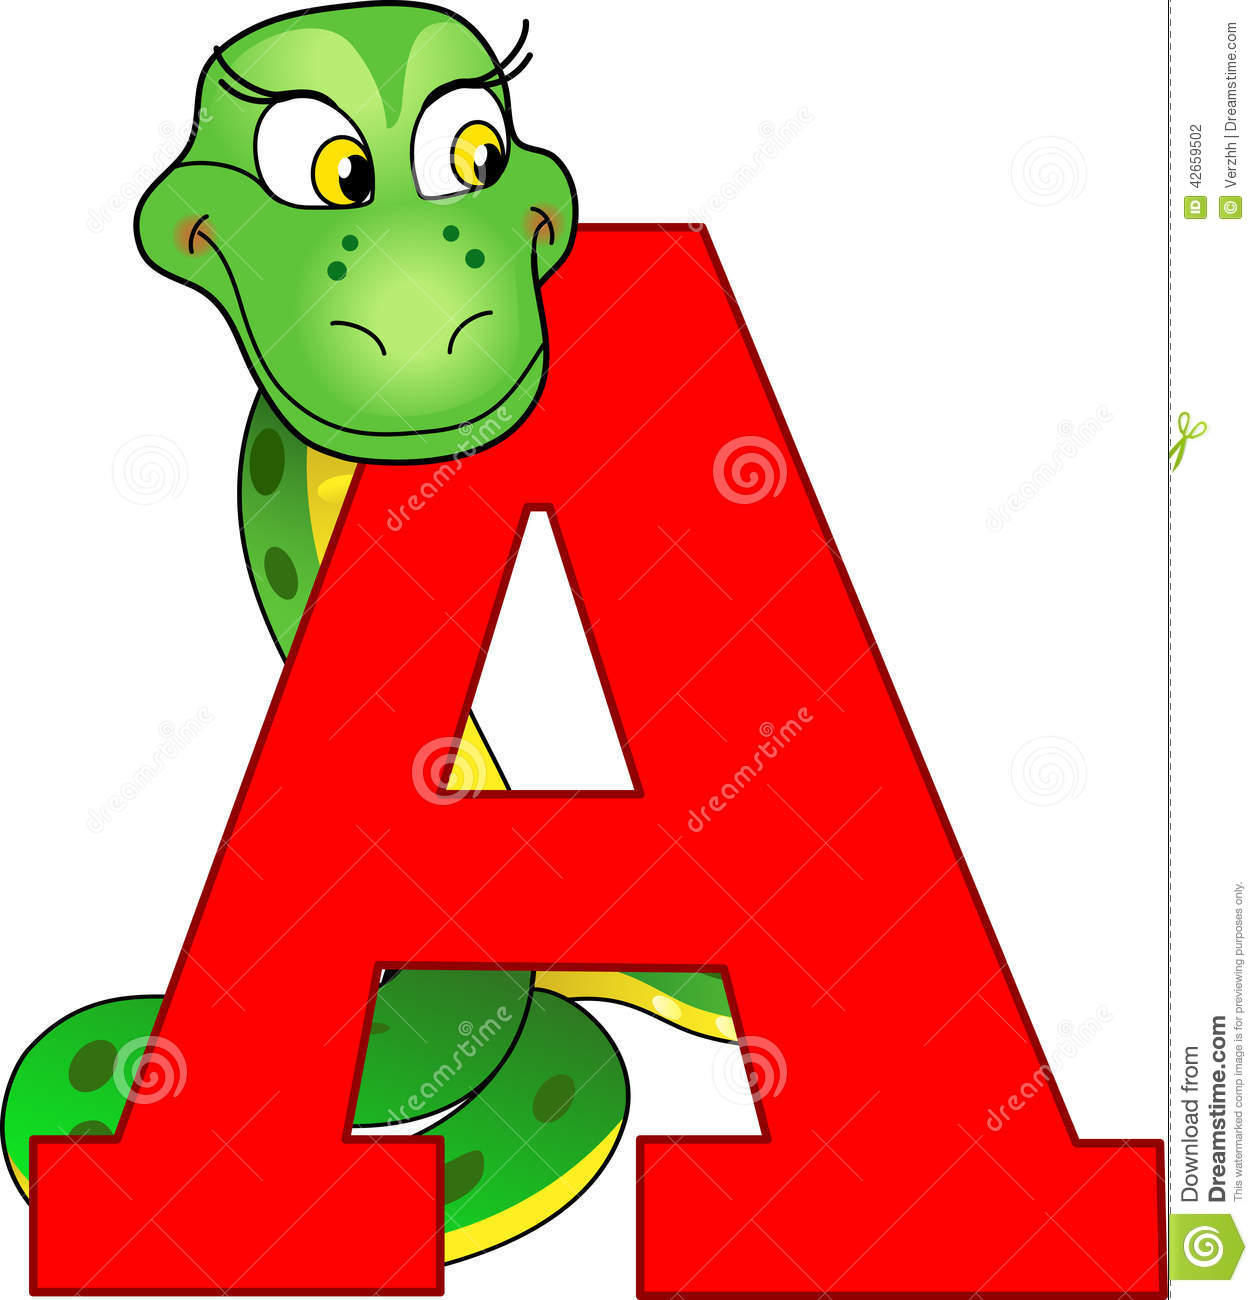 4 Letter Cartoon Characters : Anaconda stock illustration image of alphabet single